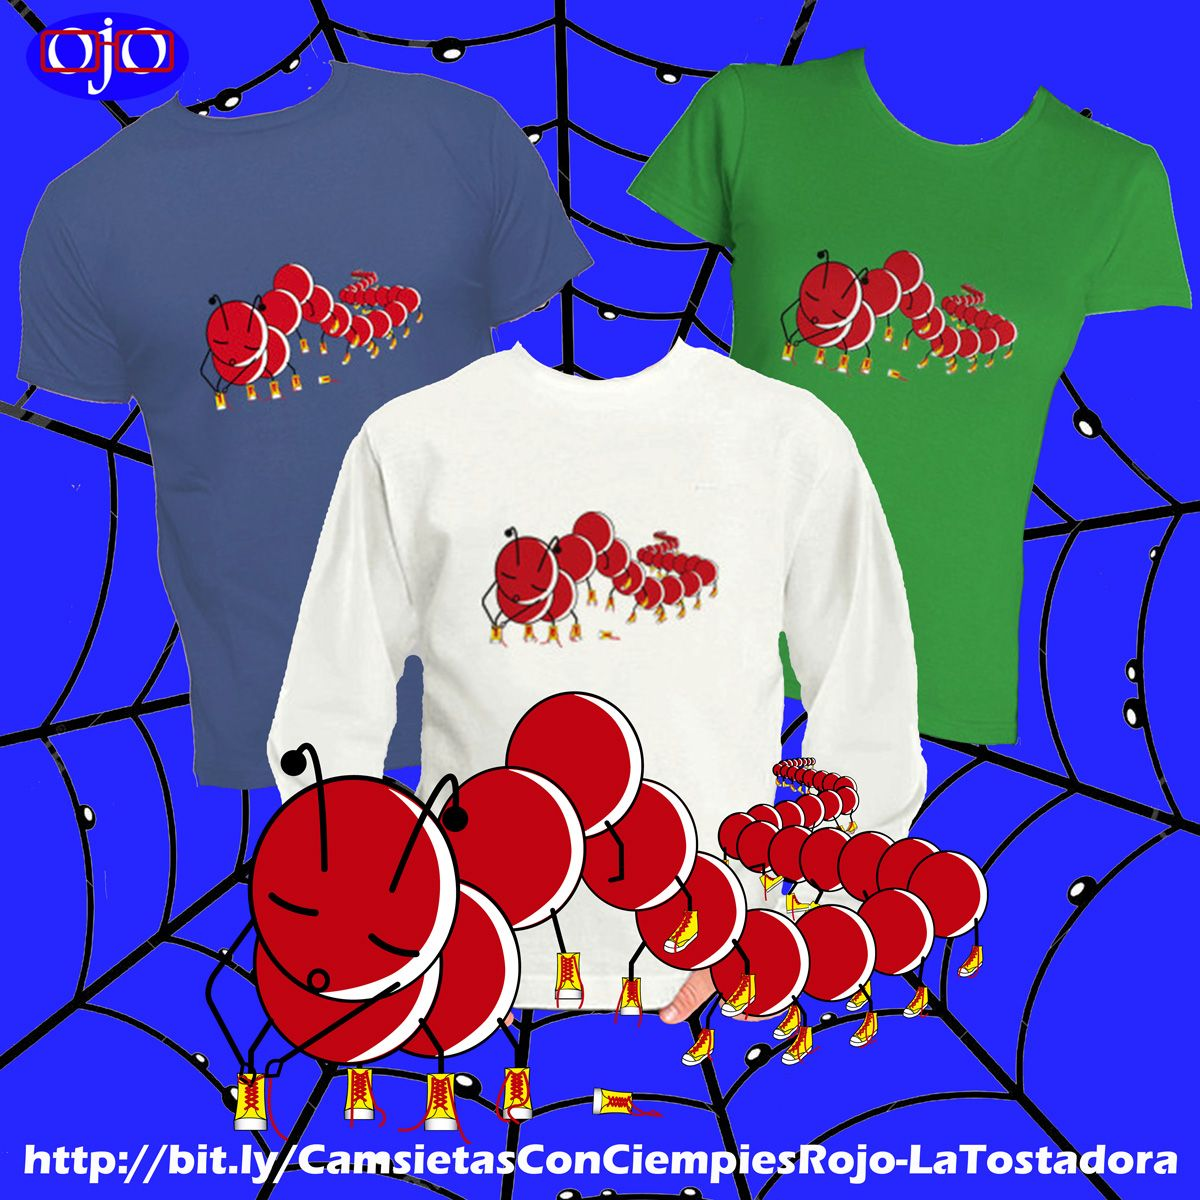 Sometimes, animals give us very interesting lessons and, perhaps, it surprises us.  How would you feel if, every morning, you had to tie the laces of 50 pairs of shoes?  This centipede is very clear: http://bit.ly/CamsietasConCiempiesRojo-LaTostadora …  #centipedes #funtshirts #tshirtdesign #Notrends pic.twitter.com/Eeiqj1lOLa